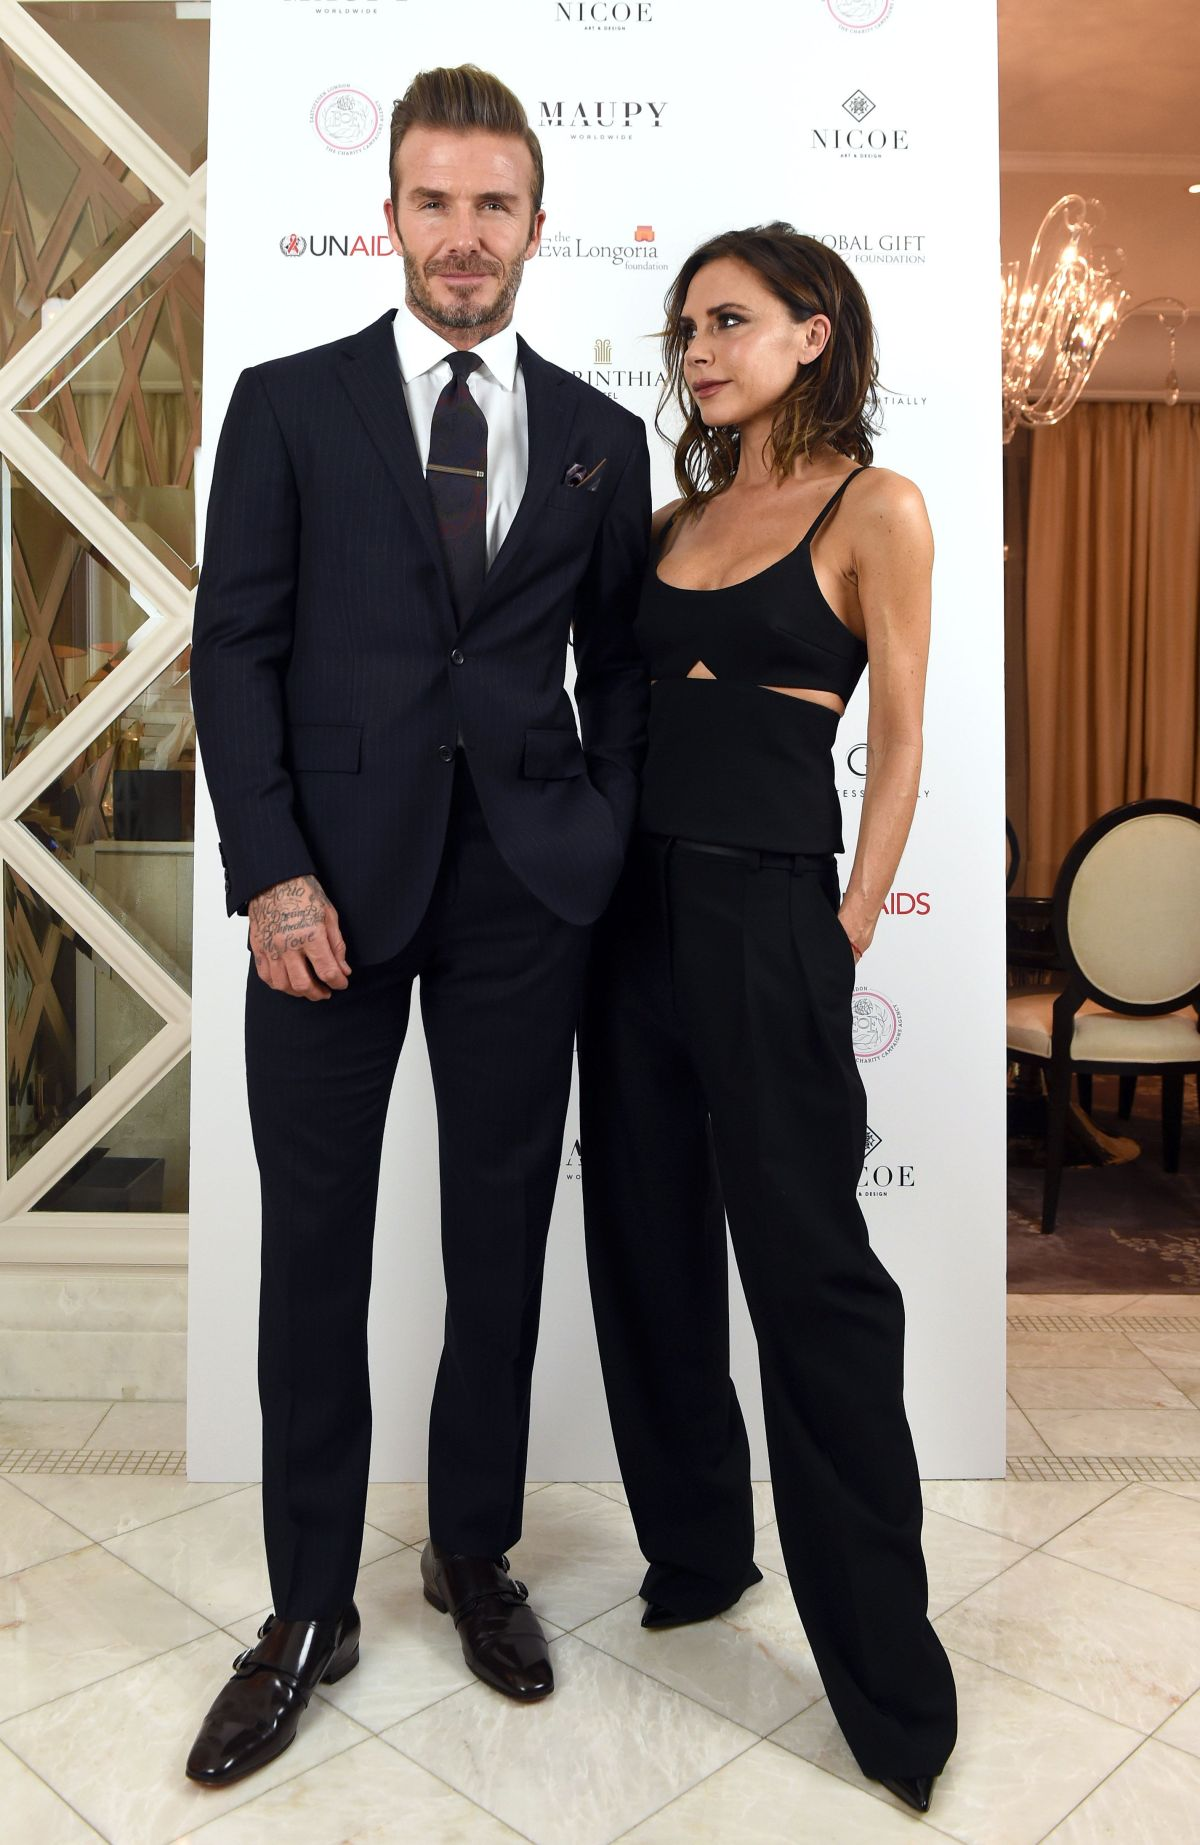 Victoria Beckham Speaks Out on Those Divorce Rumors, & Discusses Marriage  to David Beckham